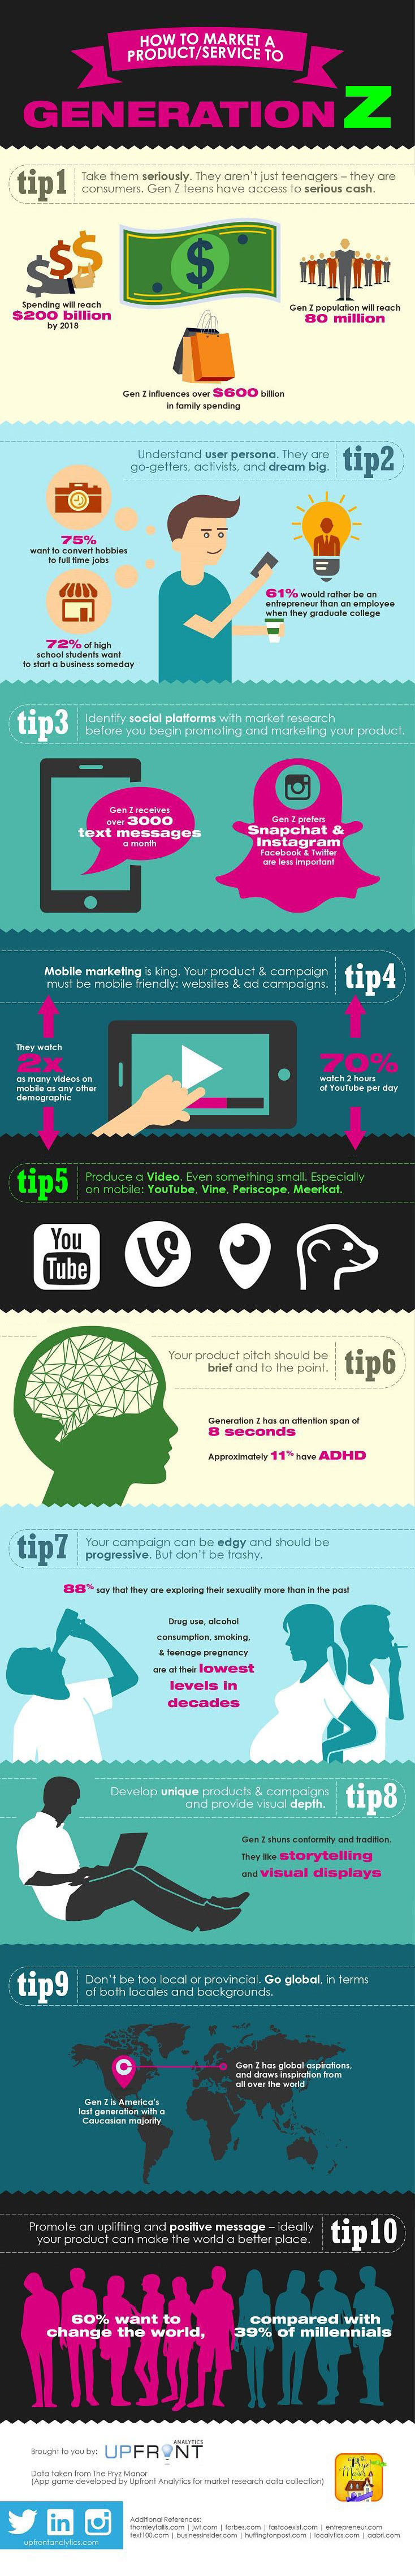 How to Market to Generation Z Infographic